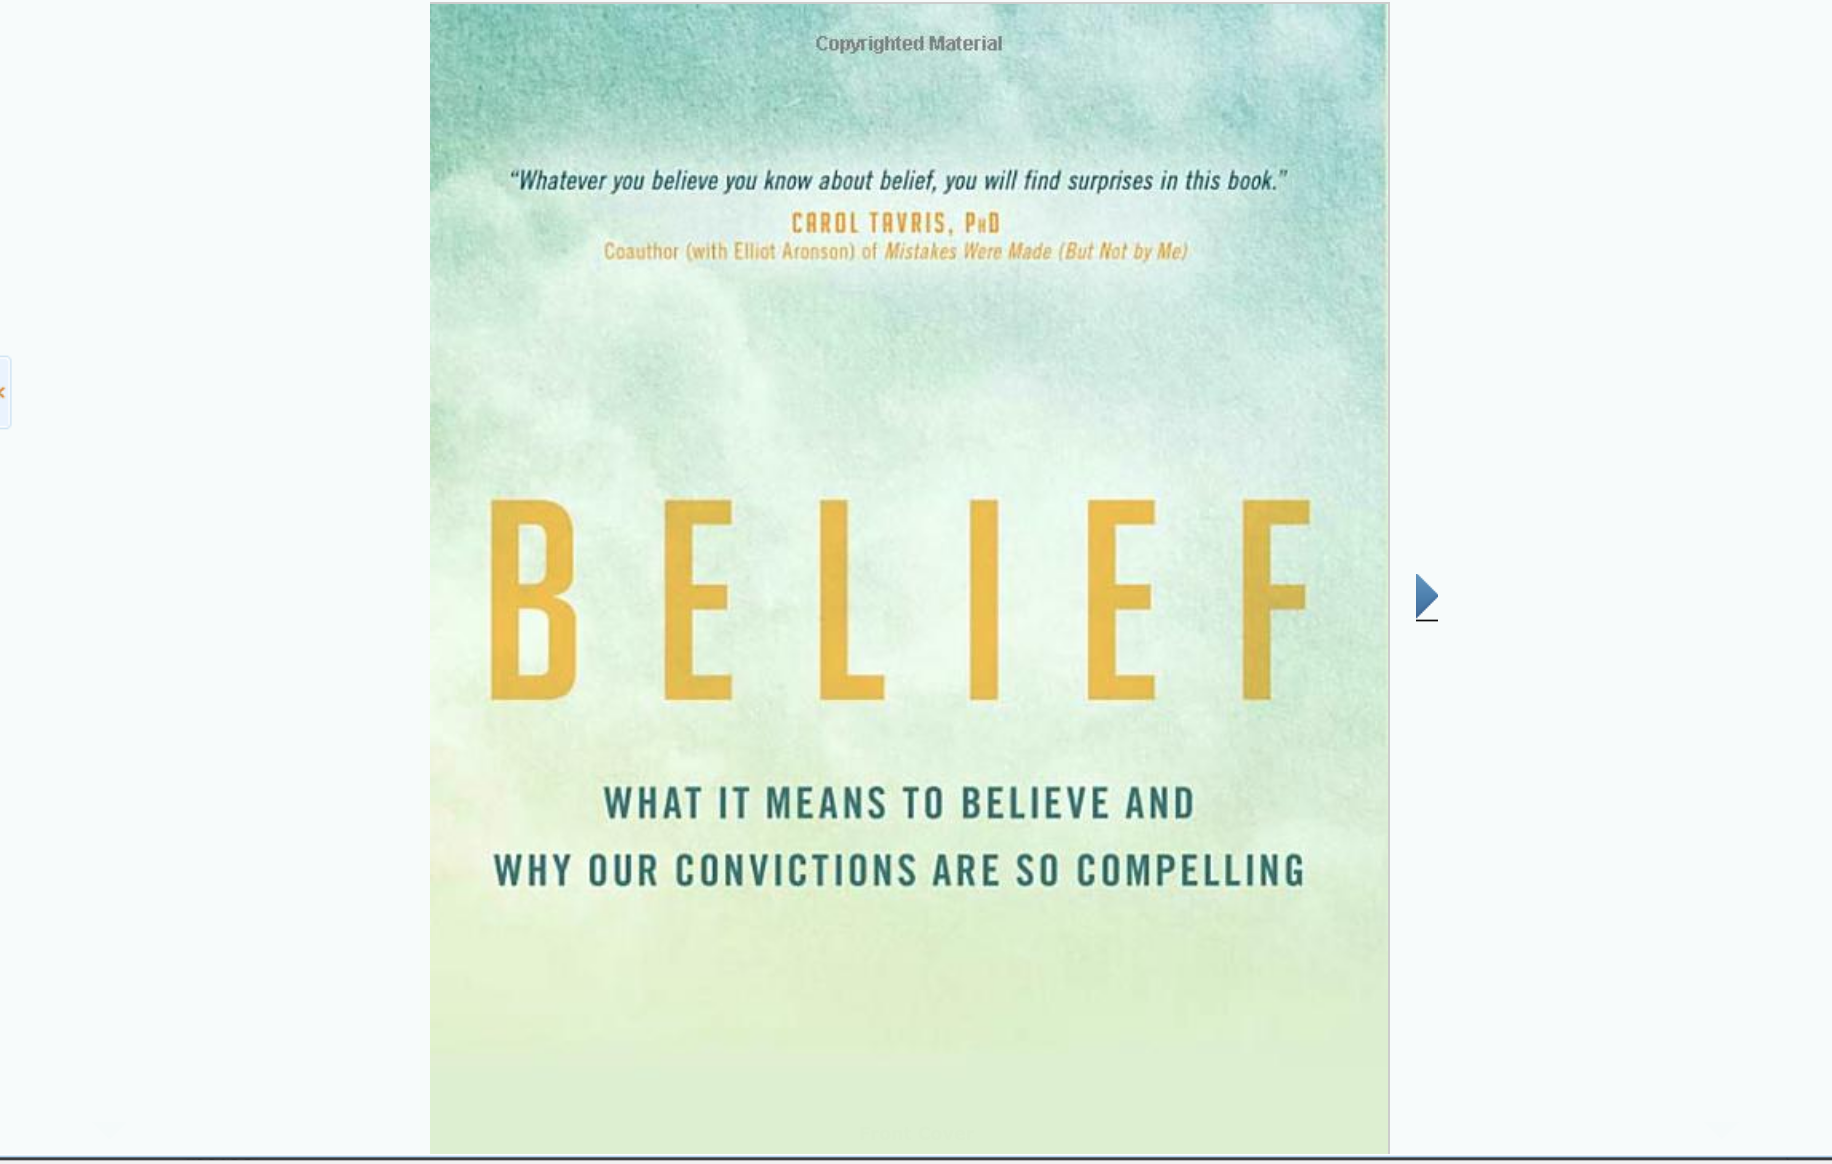 Belief: What It Means to Believe and Why Our Convictions Are So Compelling - Review